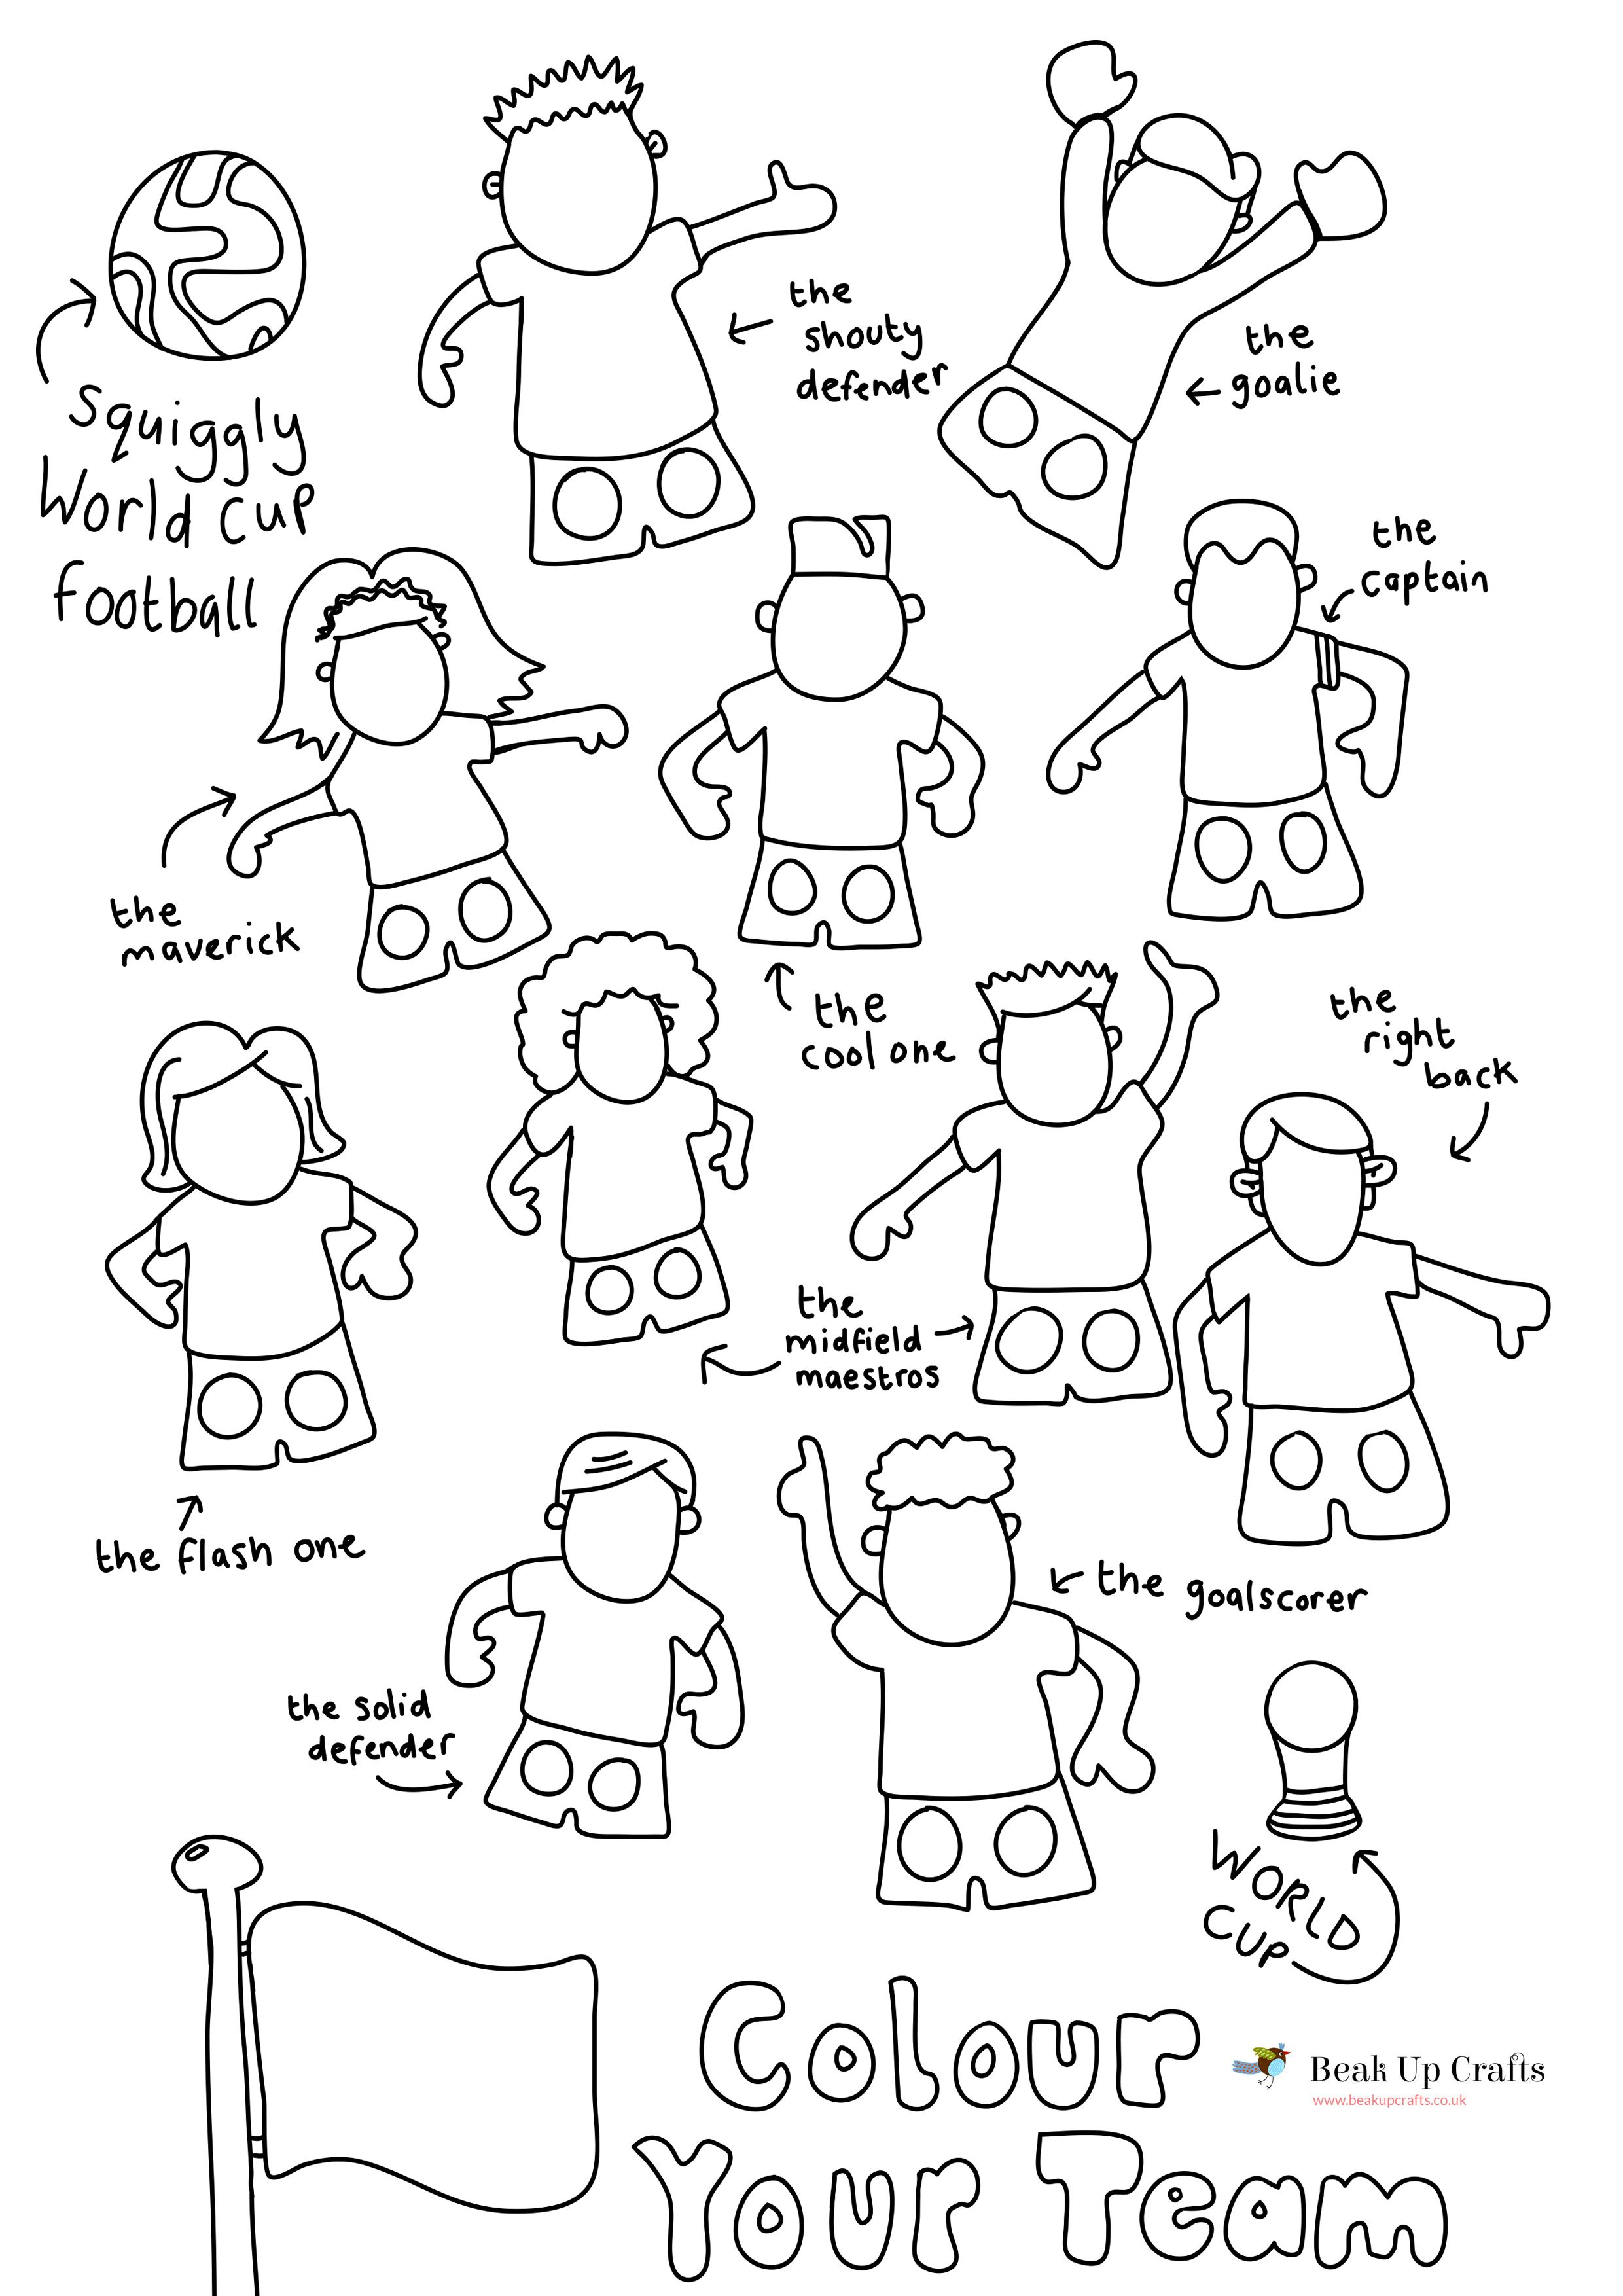 Free Printable World Cup Football Soccer Player Paper